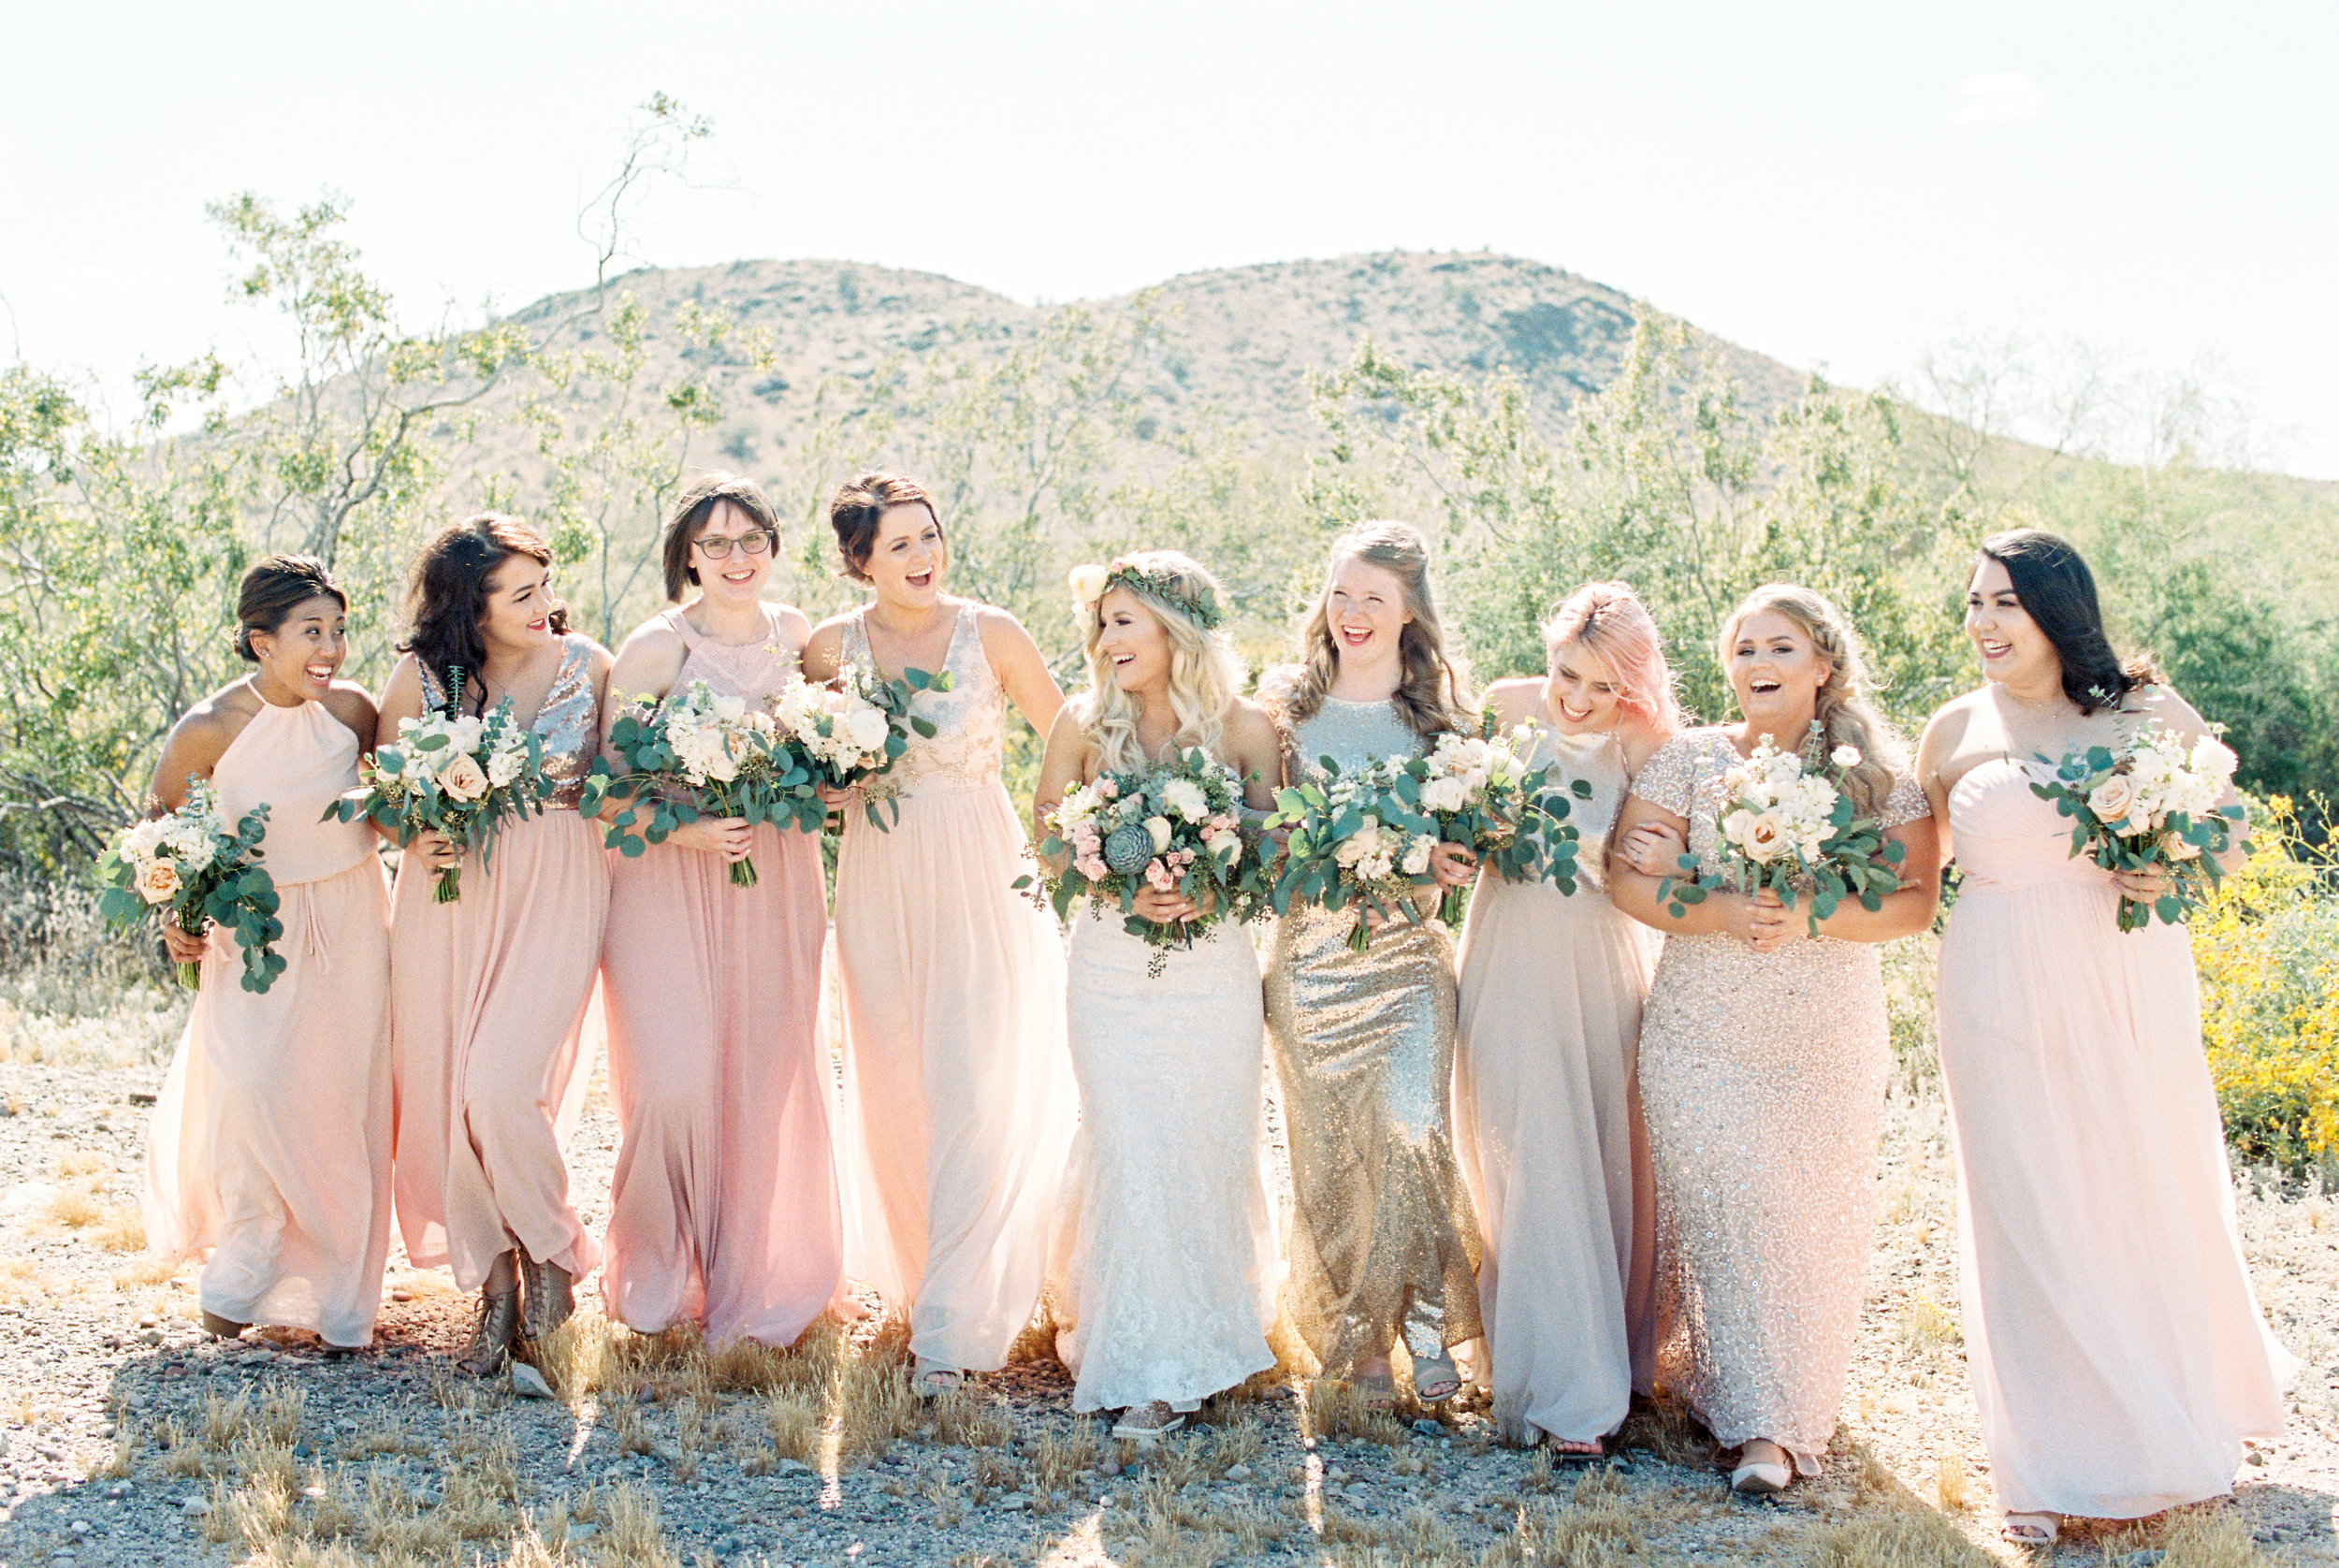 My Bridesmaid's lovely bouquets were designed by Array Design AZ